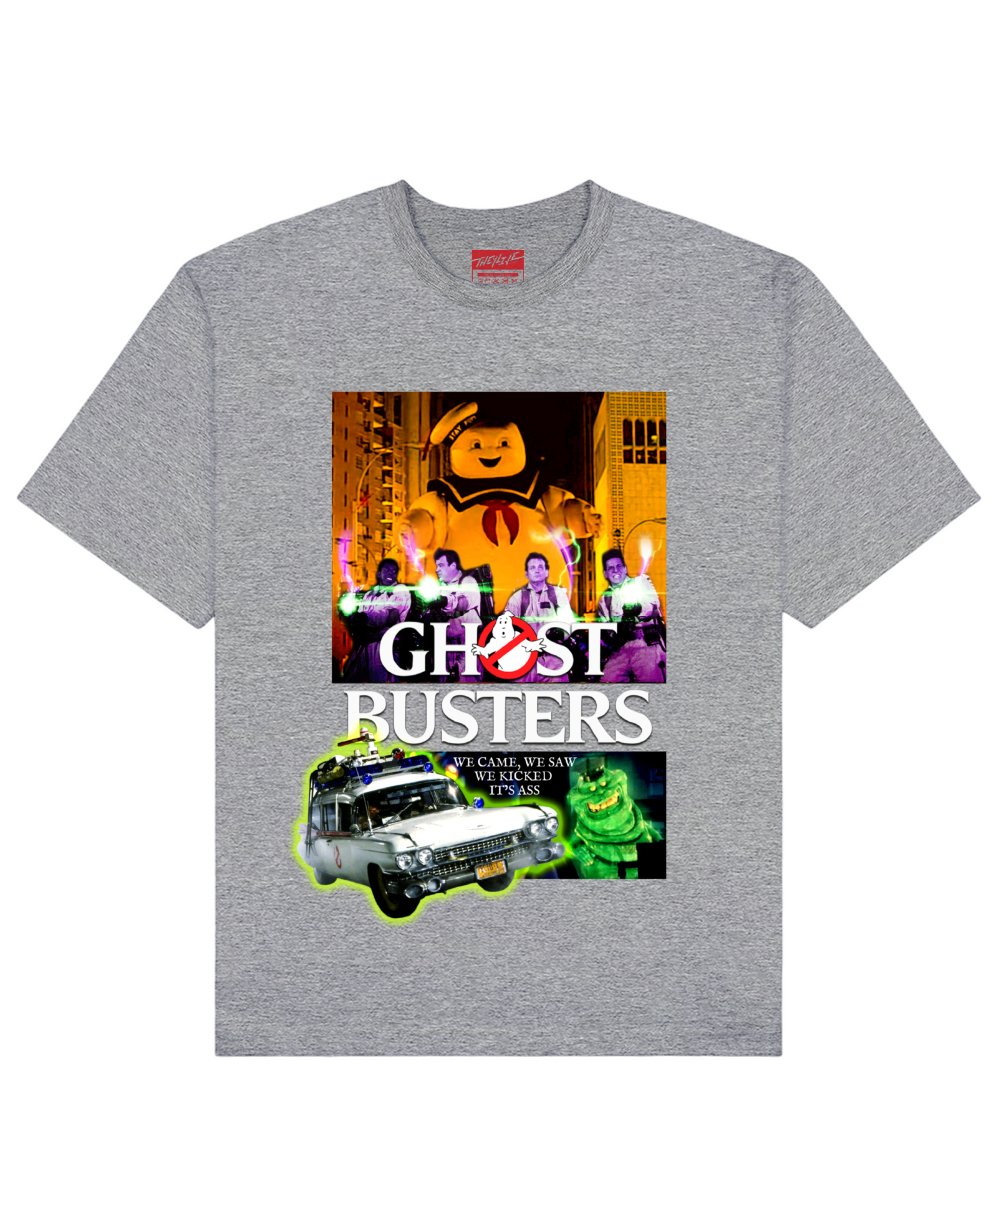 Ghost Busters Print T-Shirt in Gray